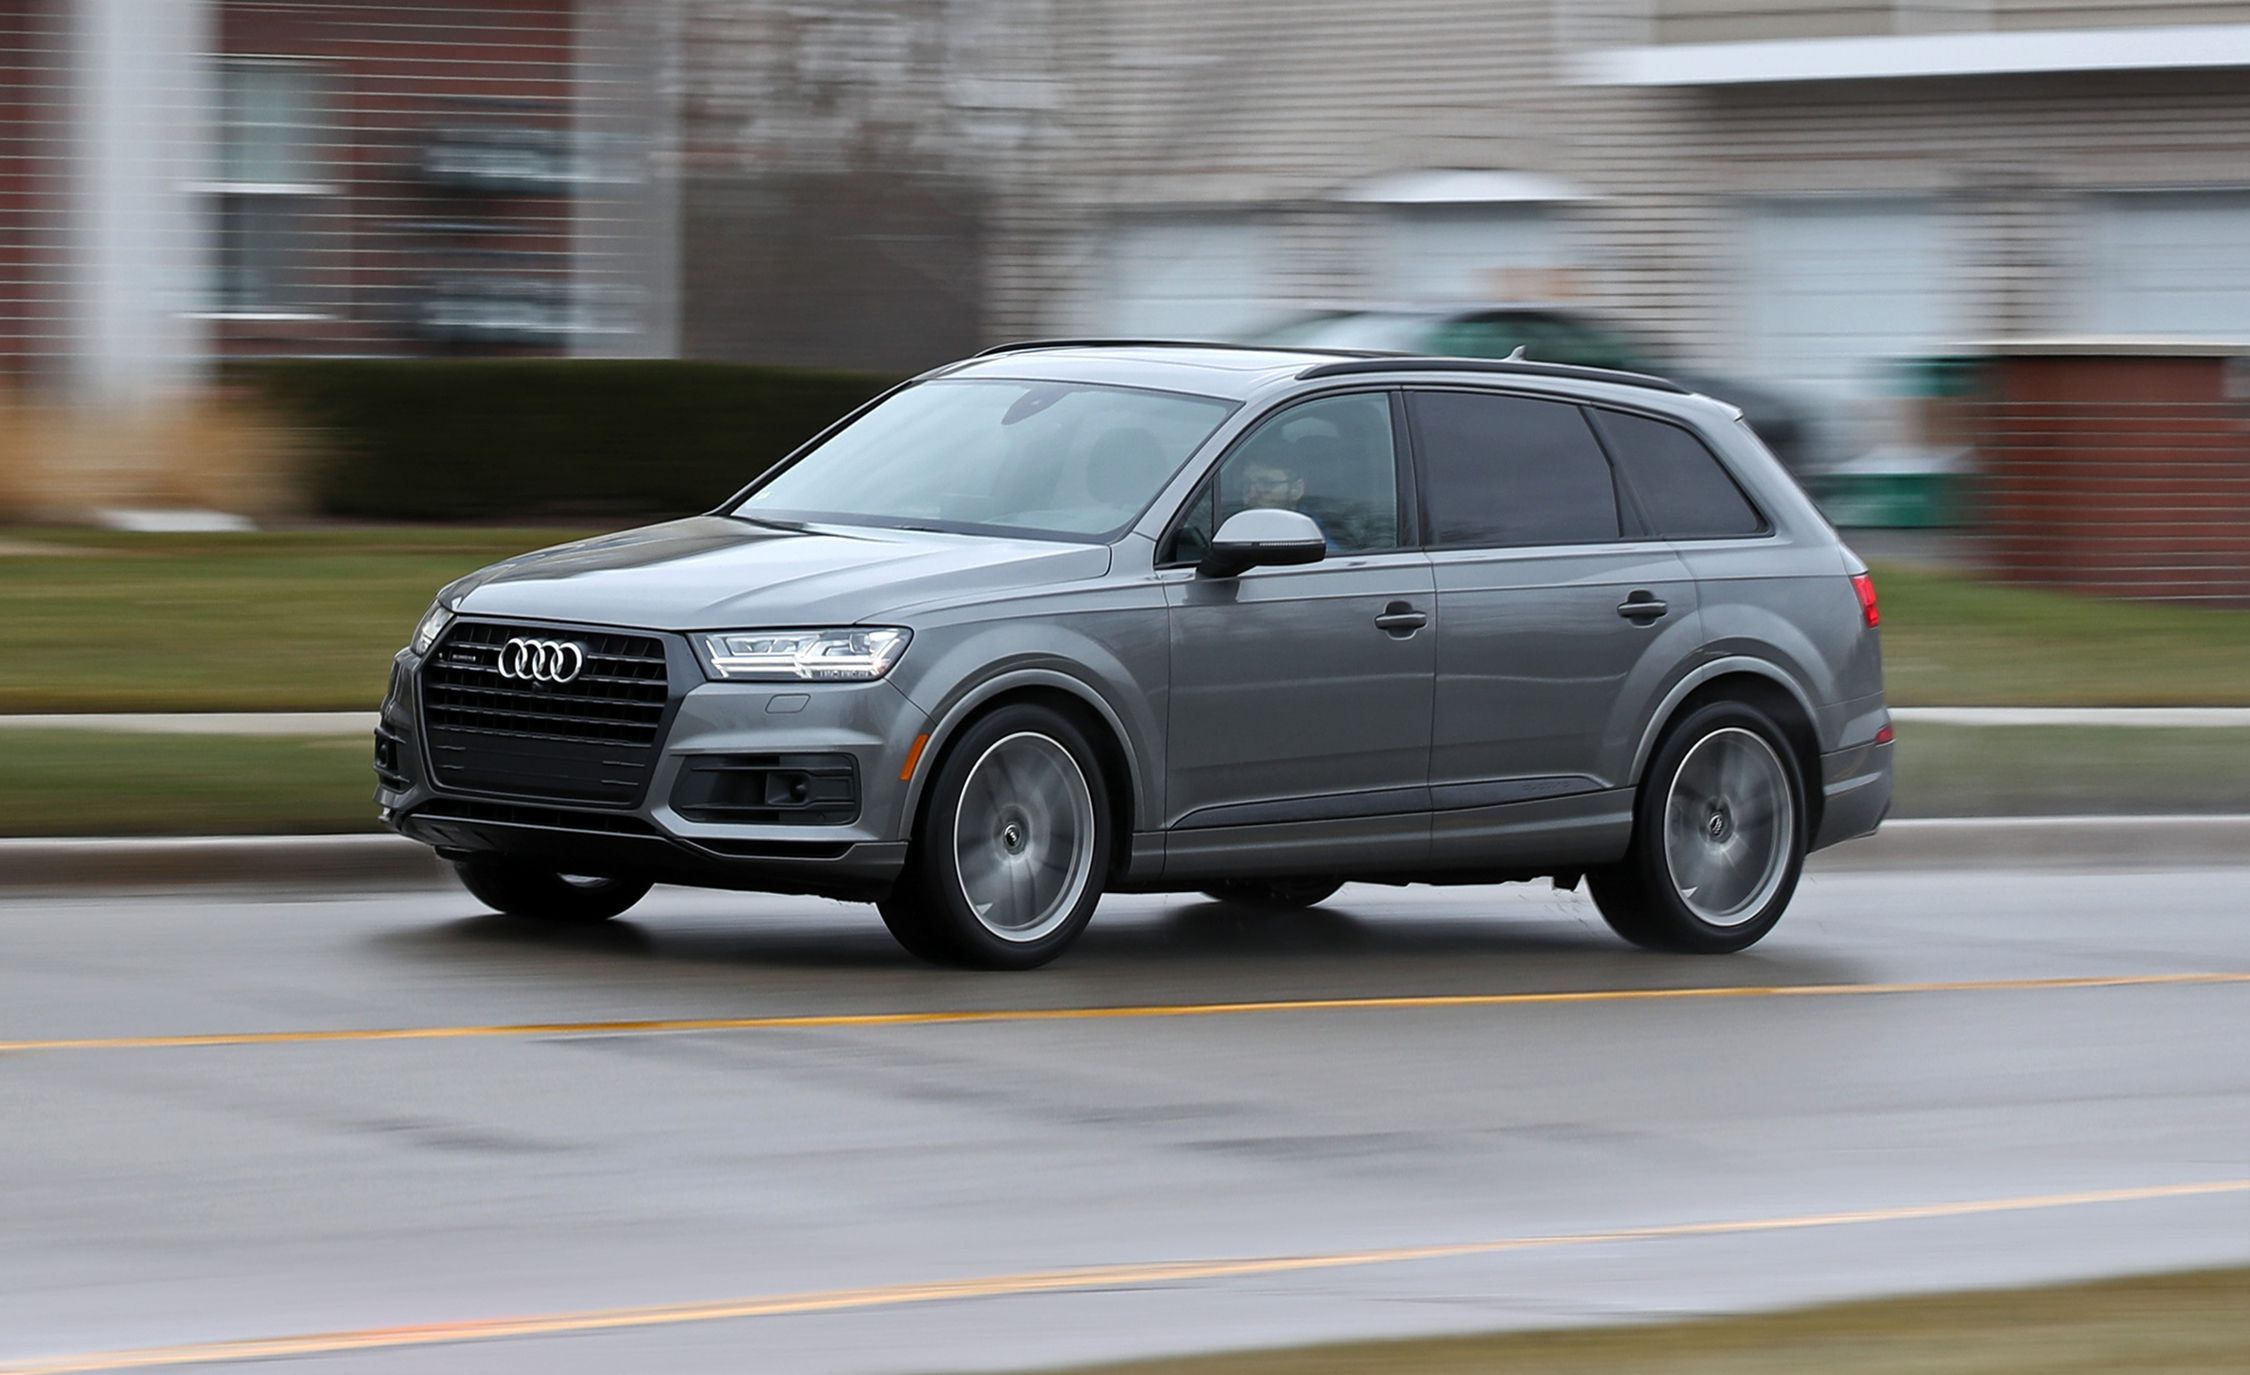 2021 Audi Q7 Spy Shots, Release Date, Specs, Price >> 2020 Audi Q7 Review Rumors Changes Price Release Date